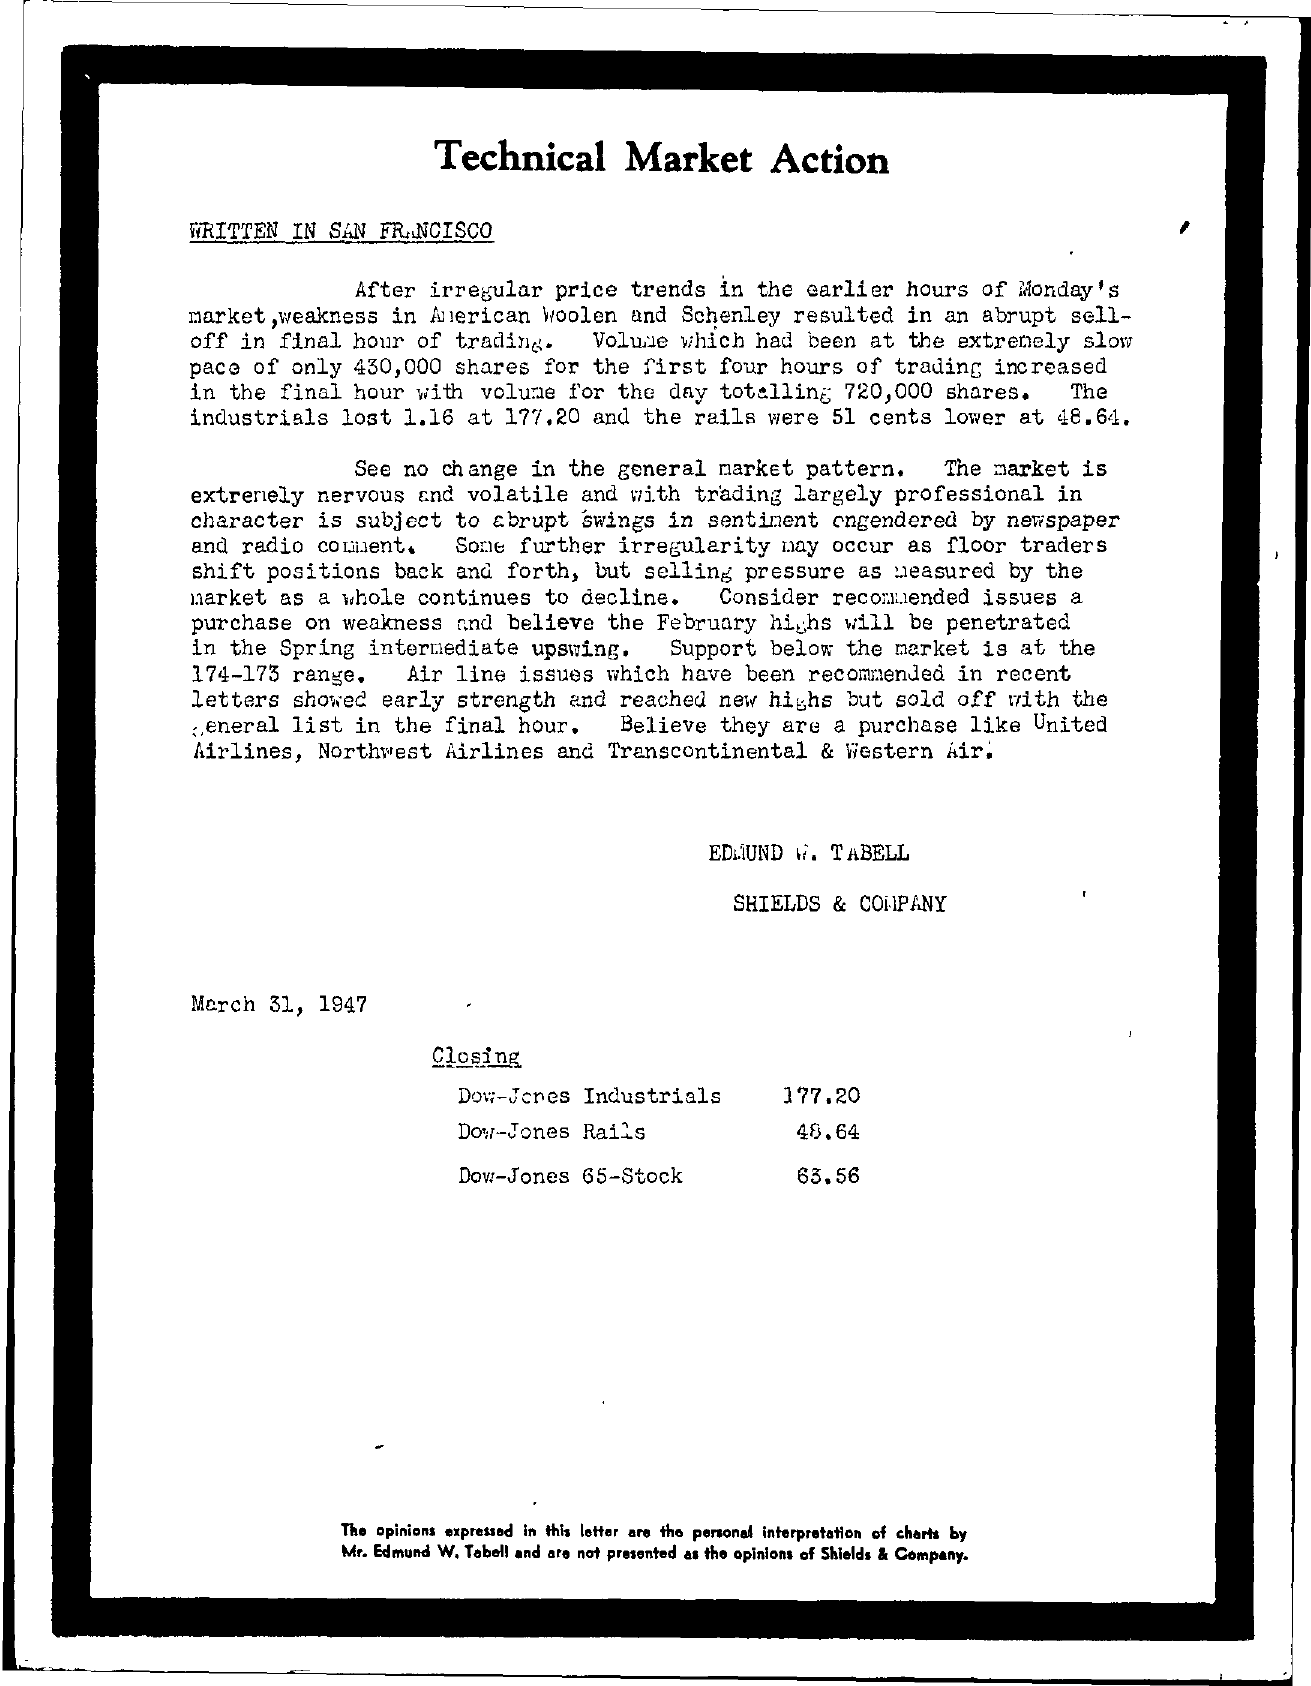 Tabell's Market Letter - March 31, 1947